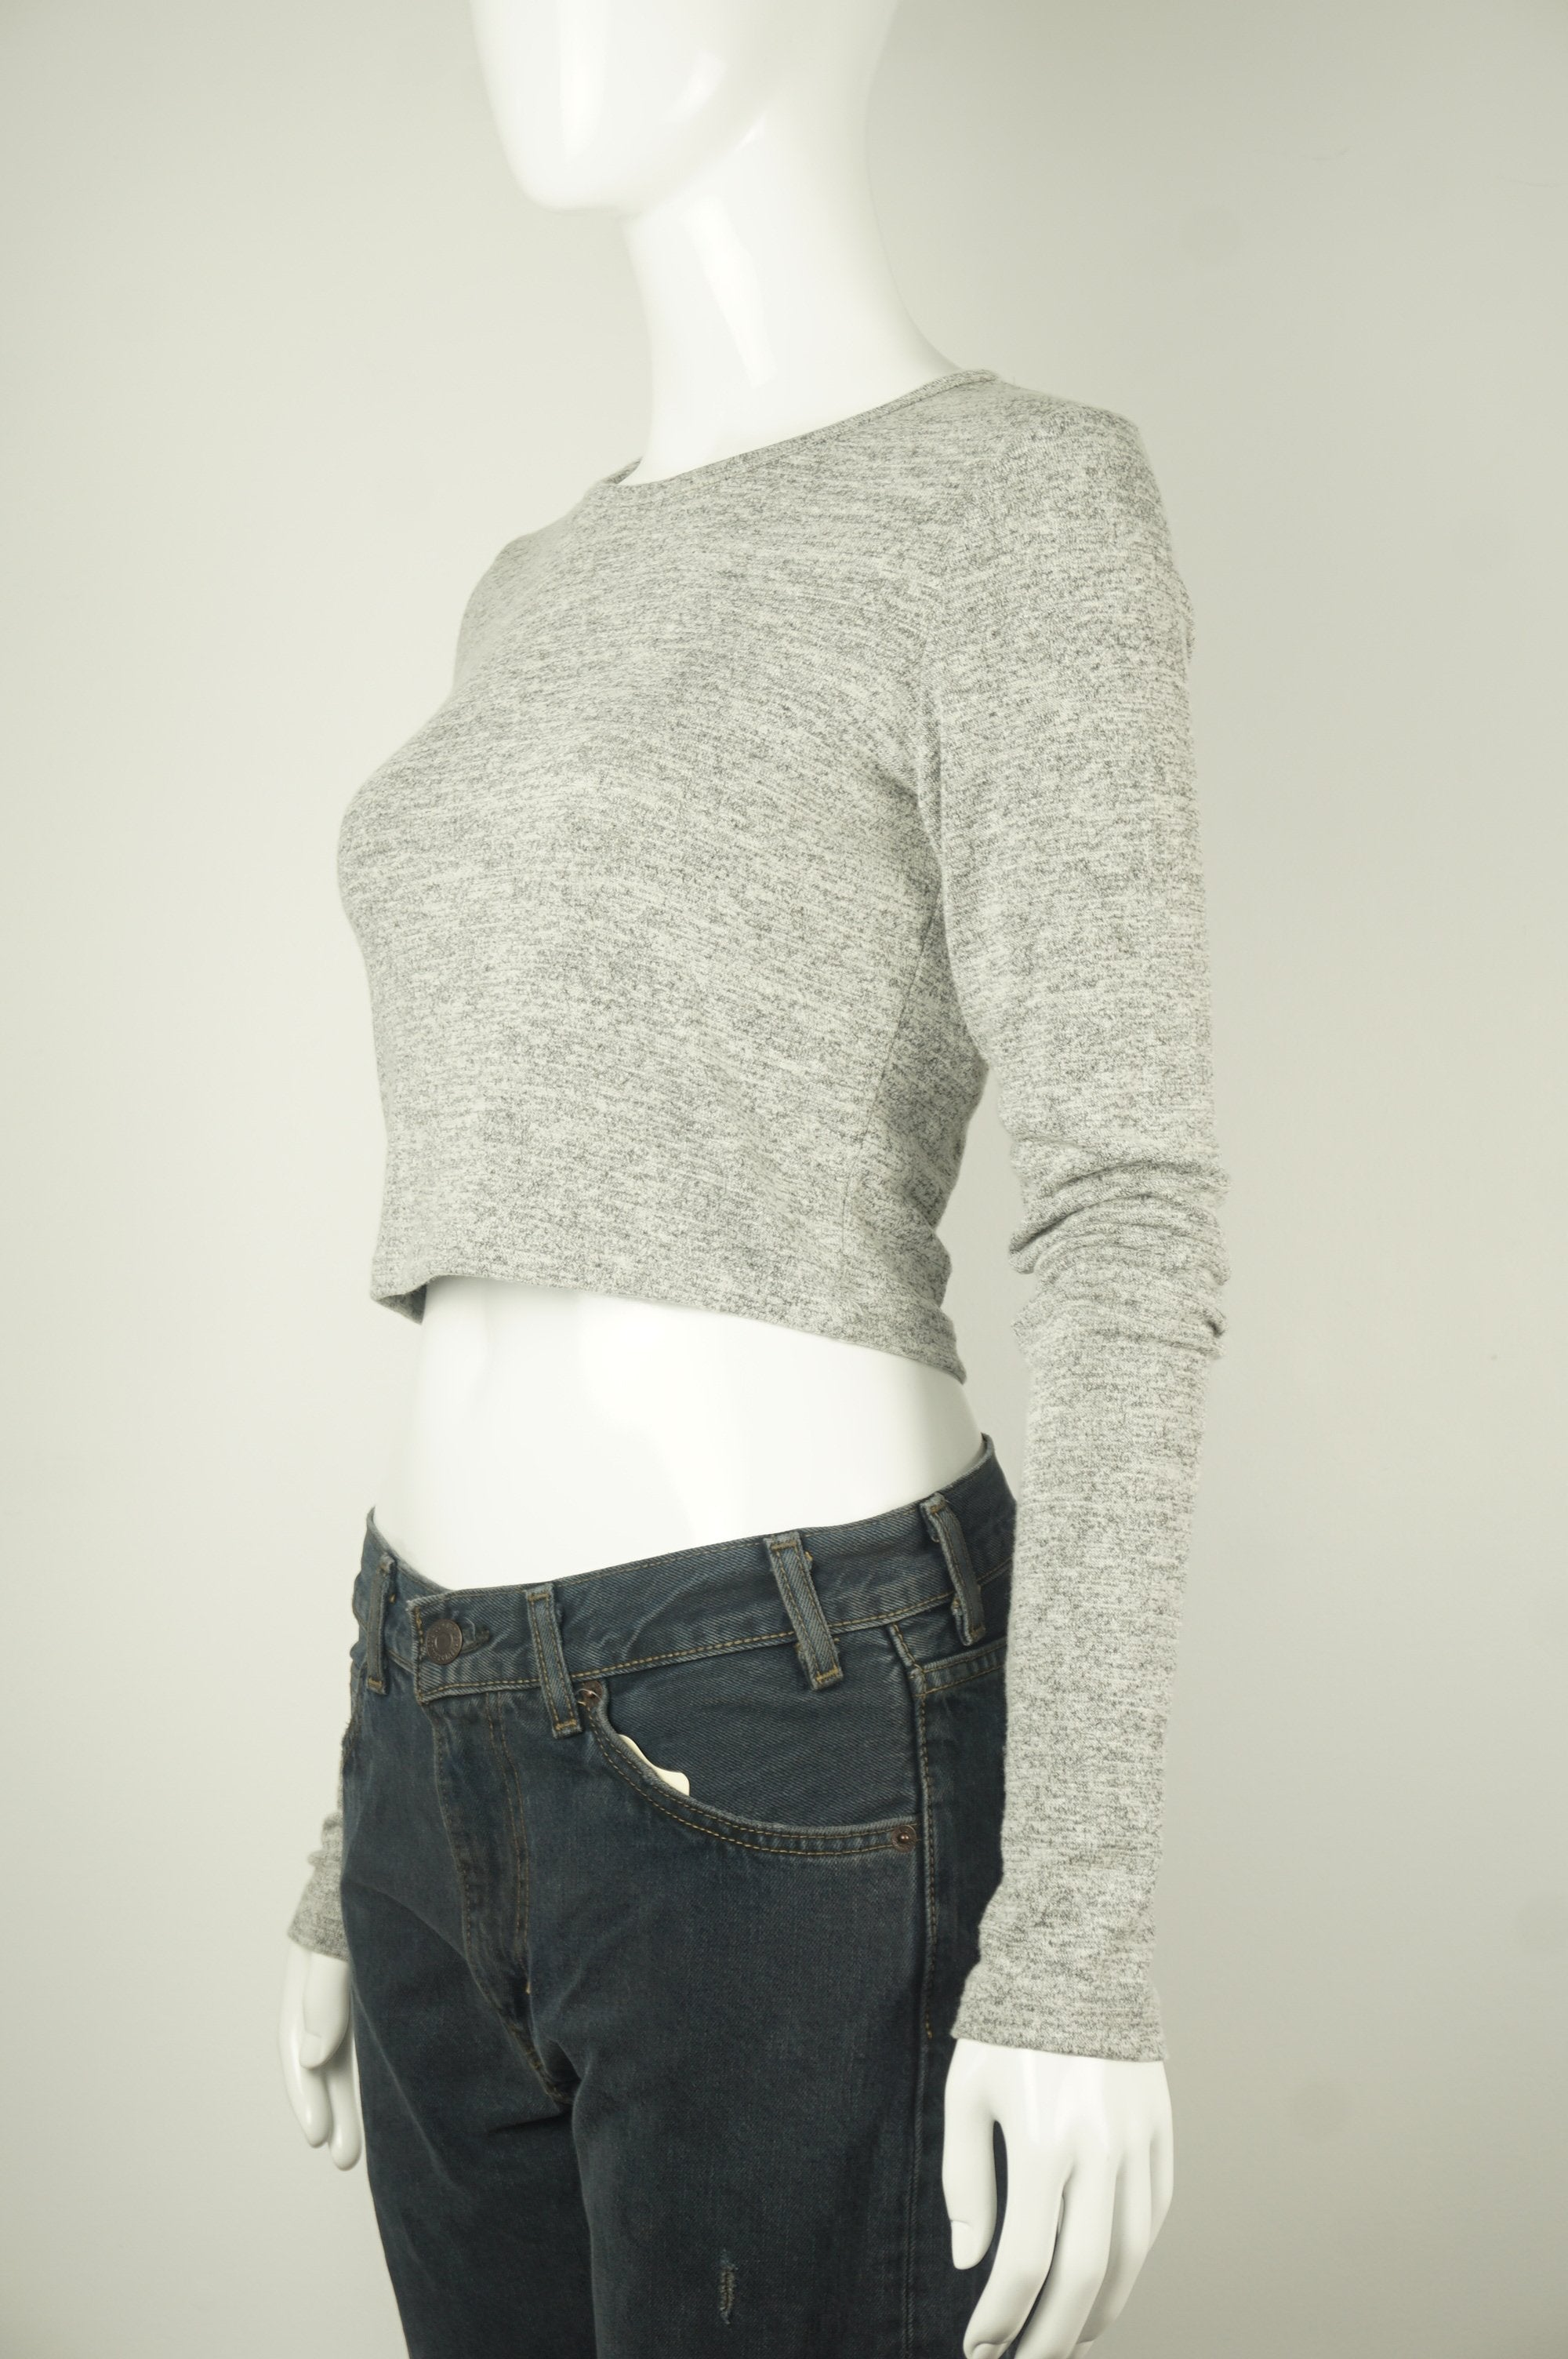 Wilfred Free Long sleeve crop top, The cropped fit is easy to wear and perfect for the season — plus it looks fantastic with high-waisted bottoms. The soft, stretchy fabric feels so amazing to wear, you're not going to want to take it off! , Grey, 48% Rayon, 48% Polyester, 4% Spandex, women's Tops, women's Grey Tops, Wilfred Free women's Tops, wilfred long sleeve crop top, aritzia women's soft crop top